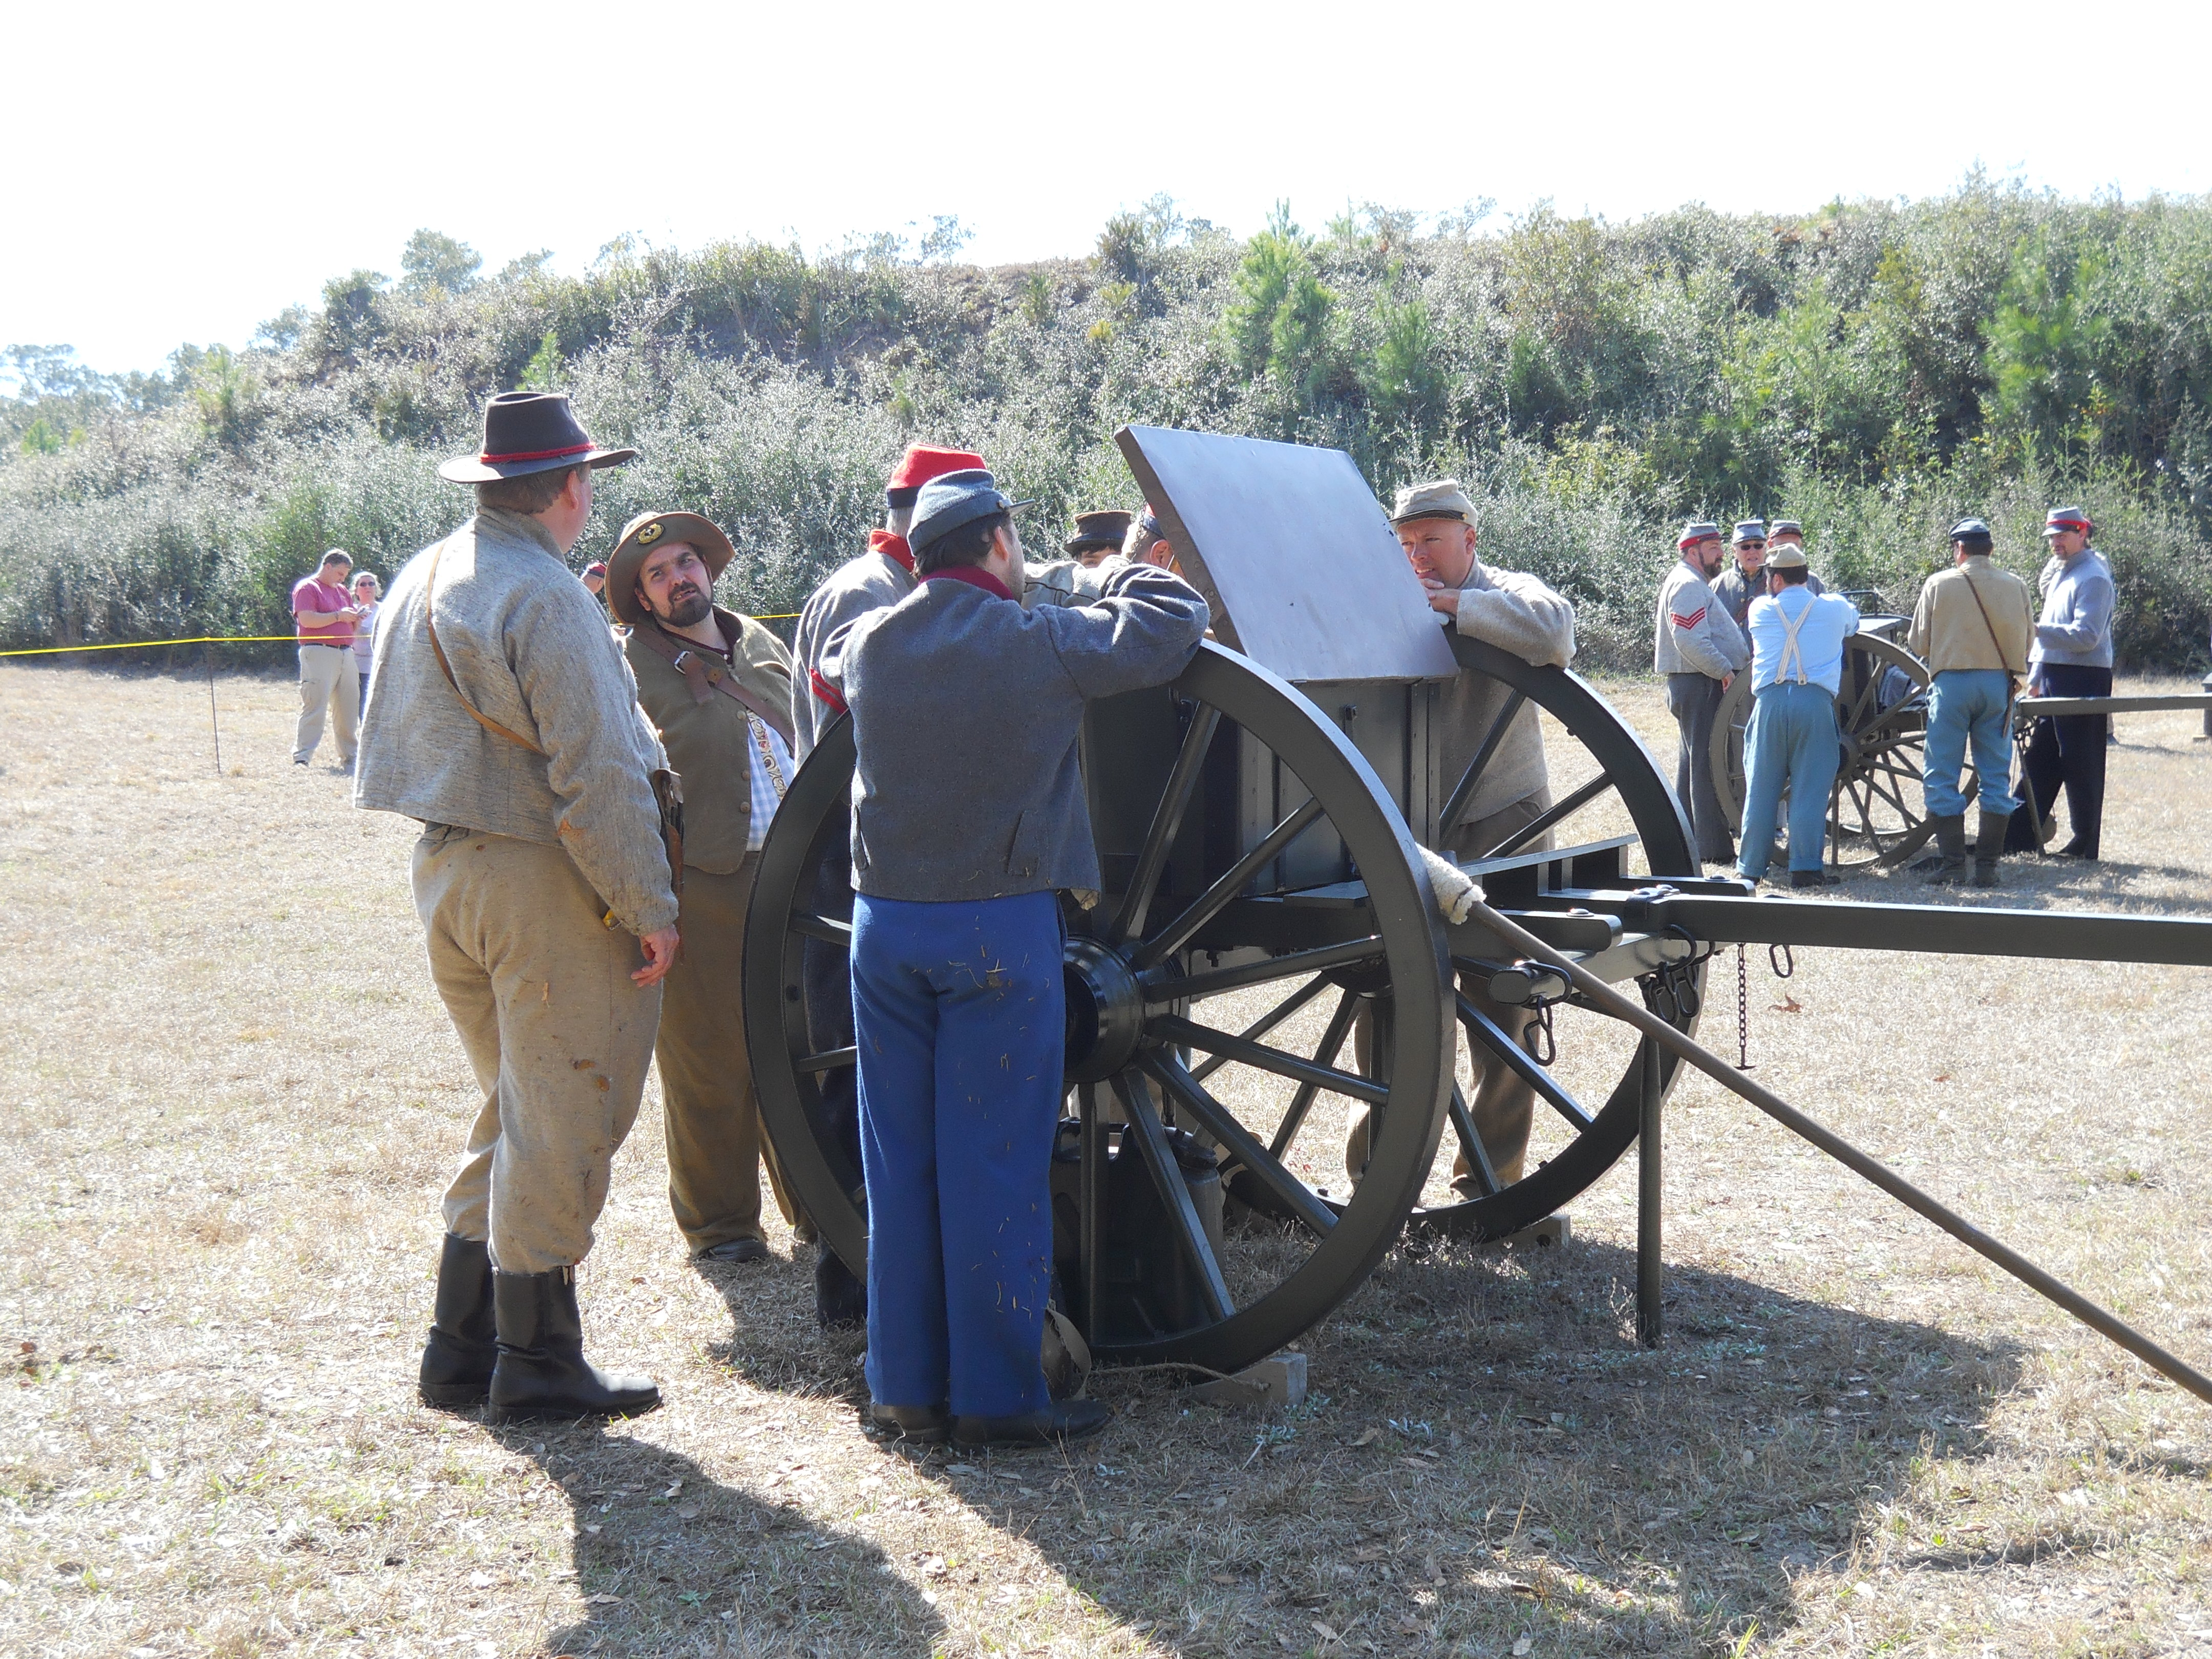 Reenactors ready cannons for fire. Photos by Christina Haley.